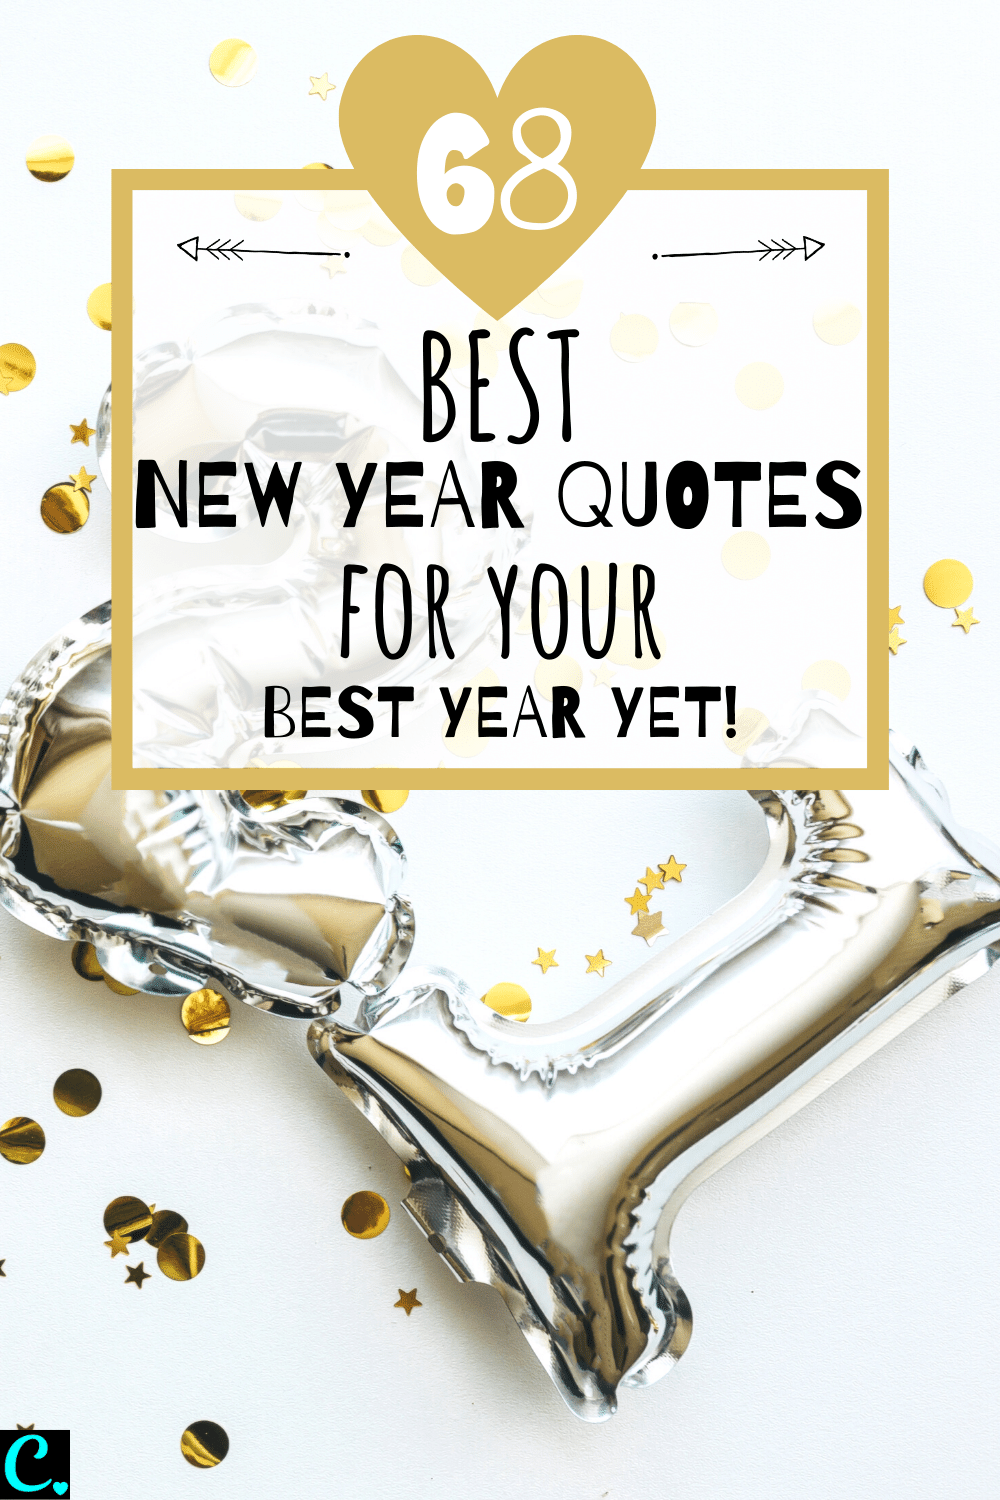 68 Best New Year Quotes For Your Best Year Yet! #newyear